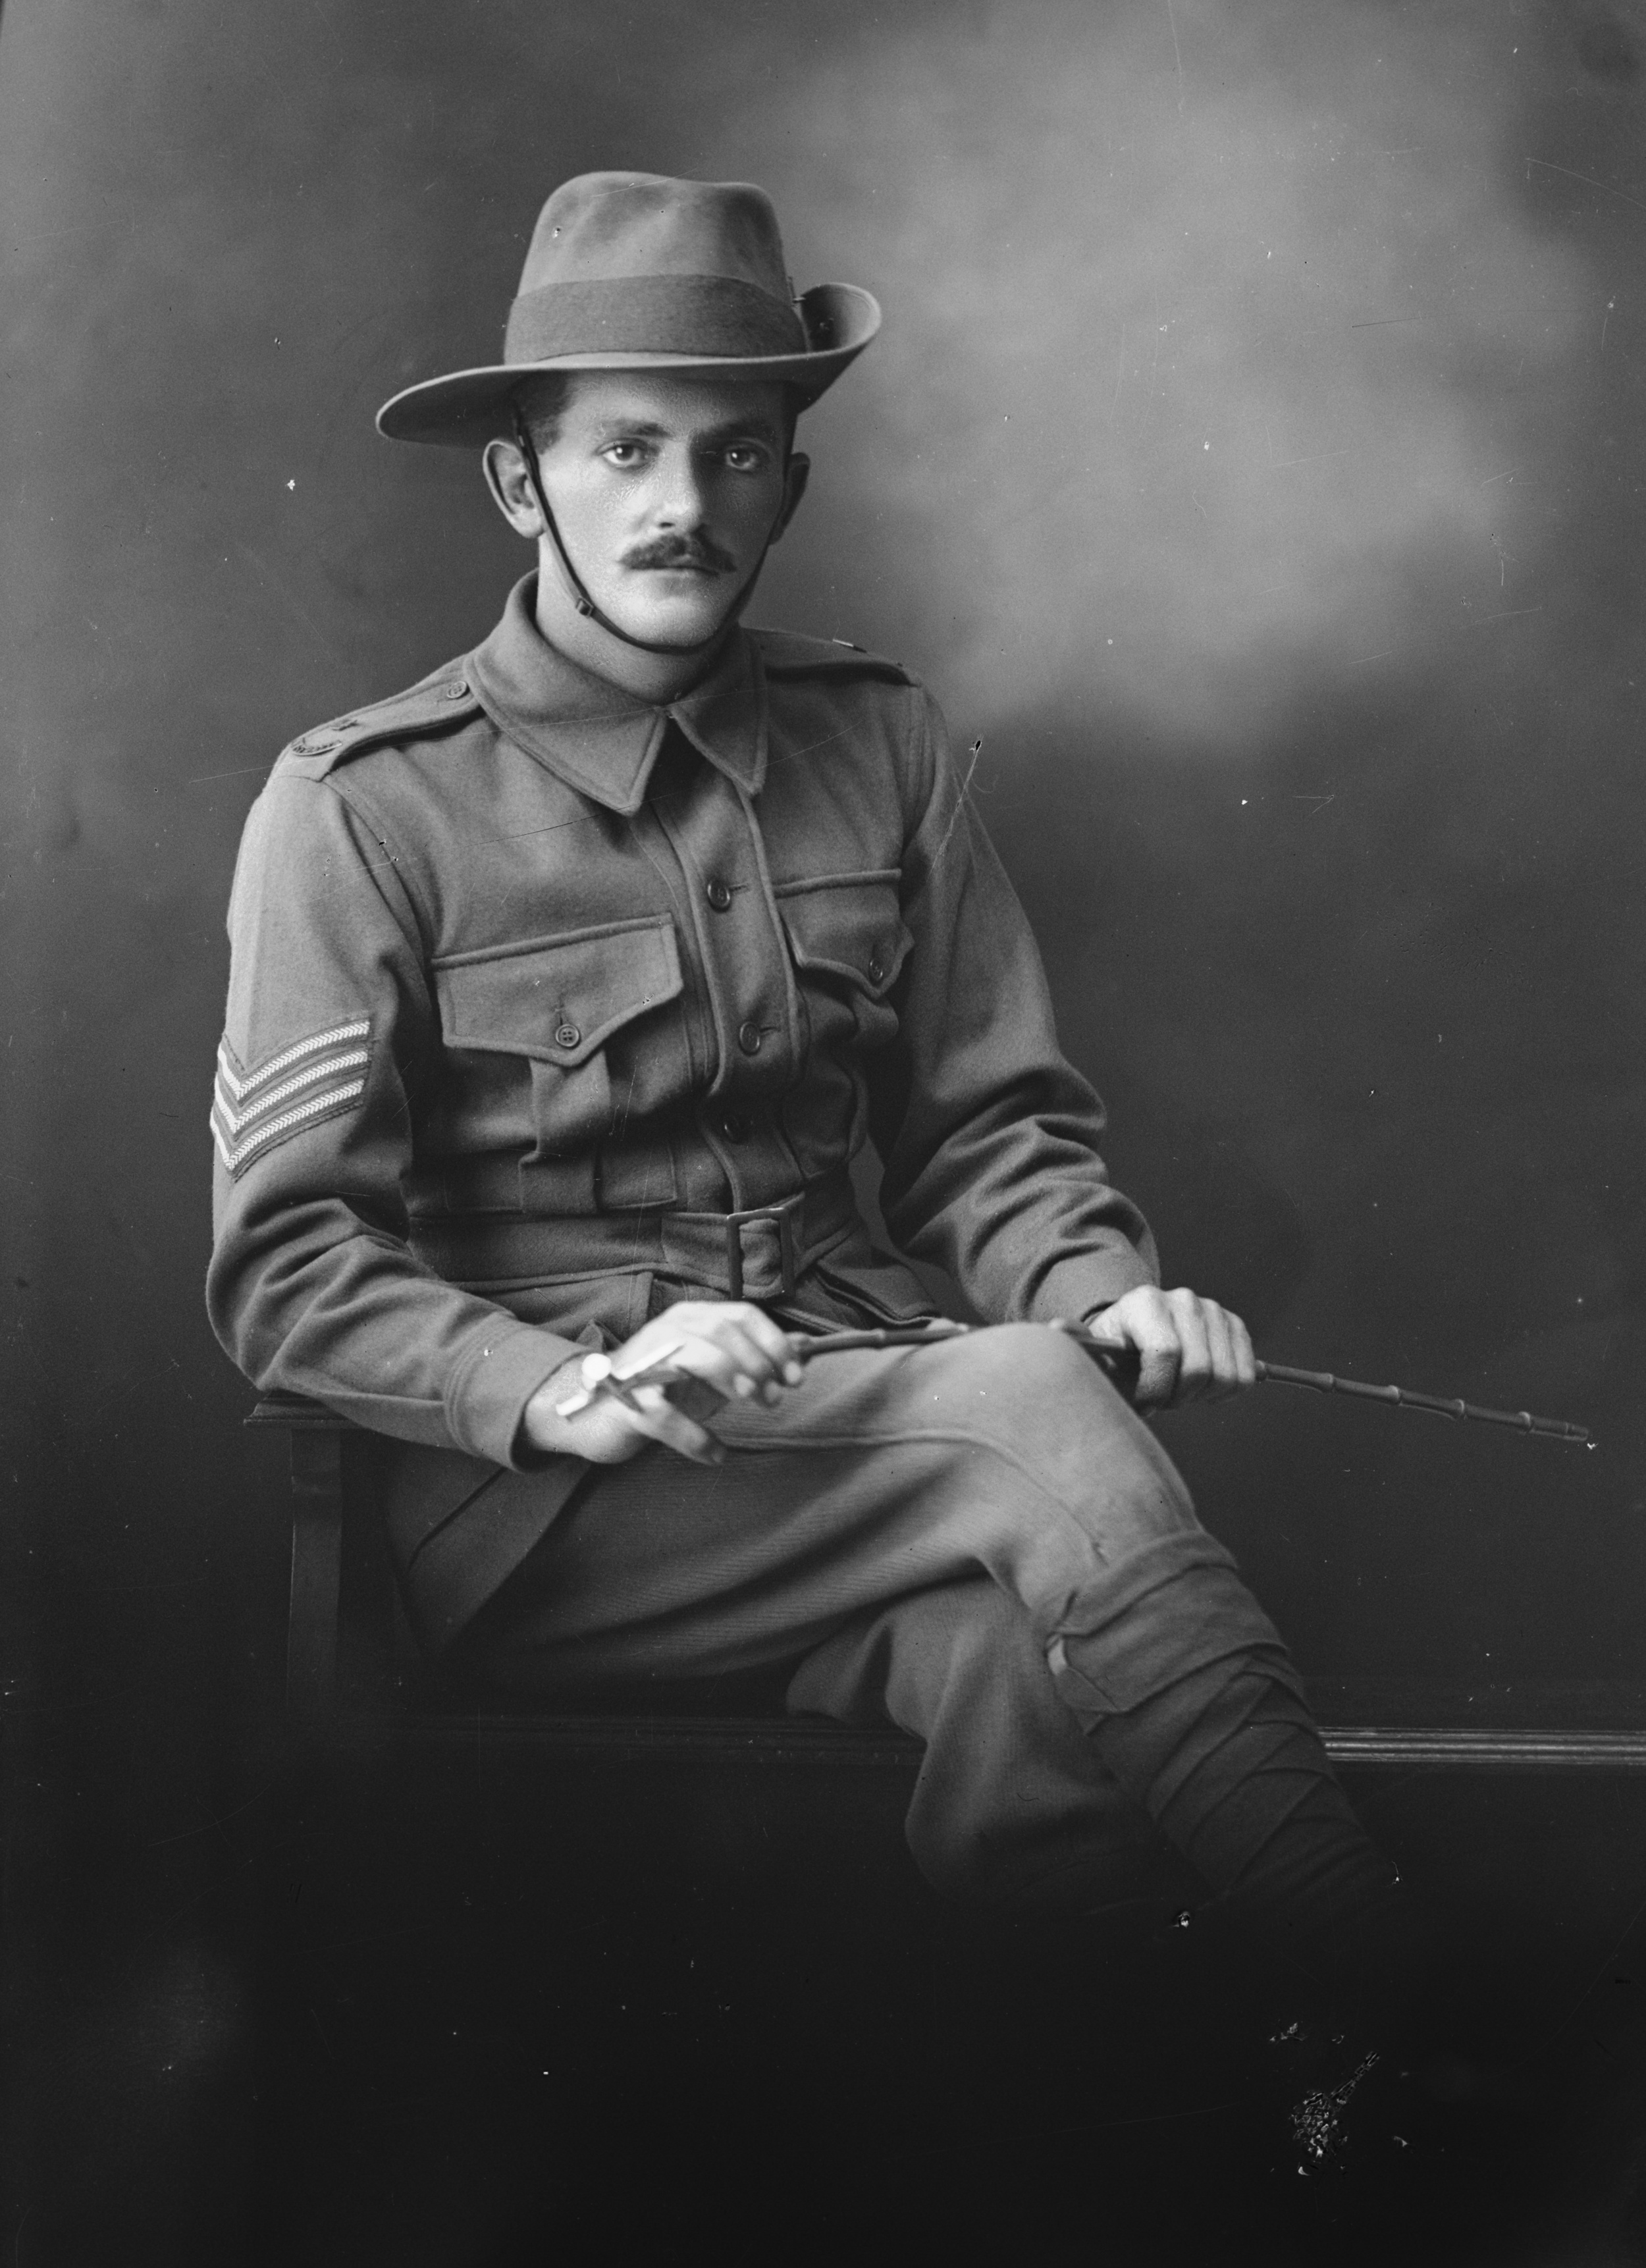 Photographed at the Dease Studio, 117 Barrack Street Perth WA Image courtesy of the State Library of Western Australia: 108149PD